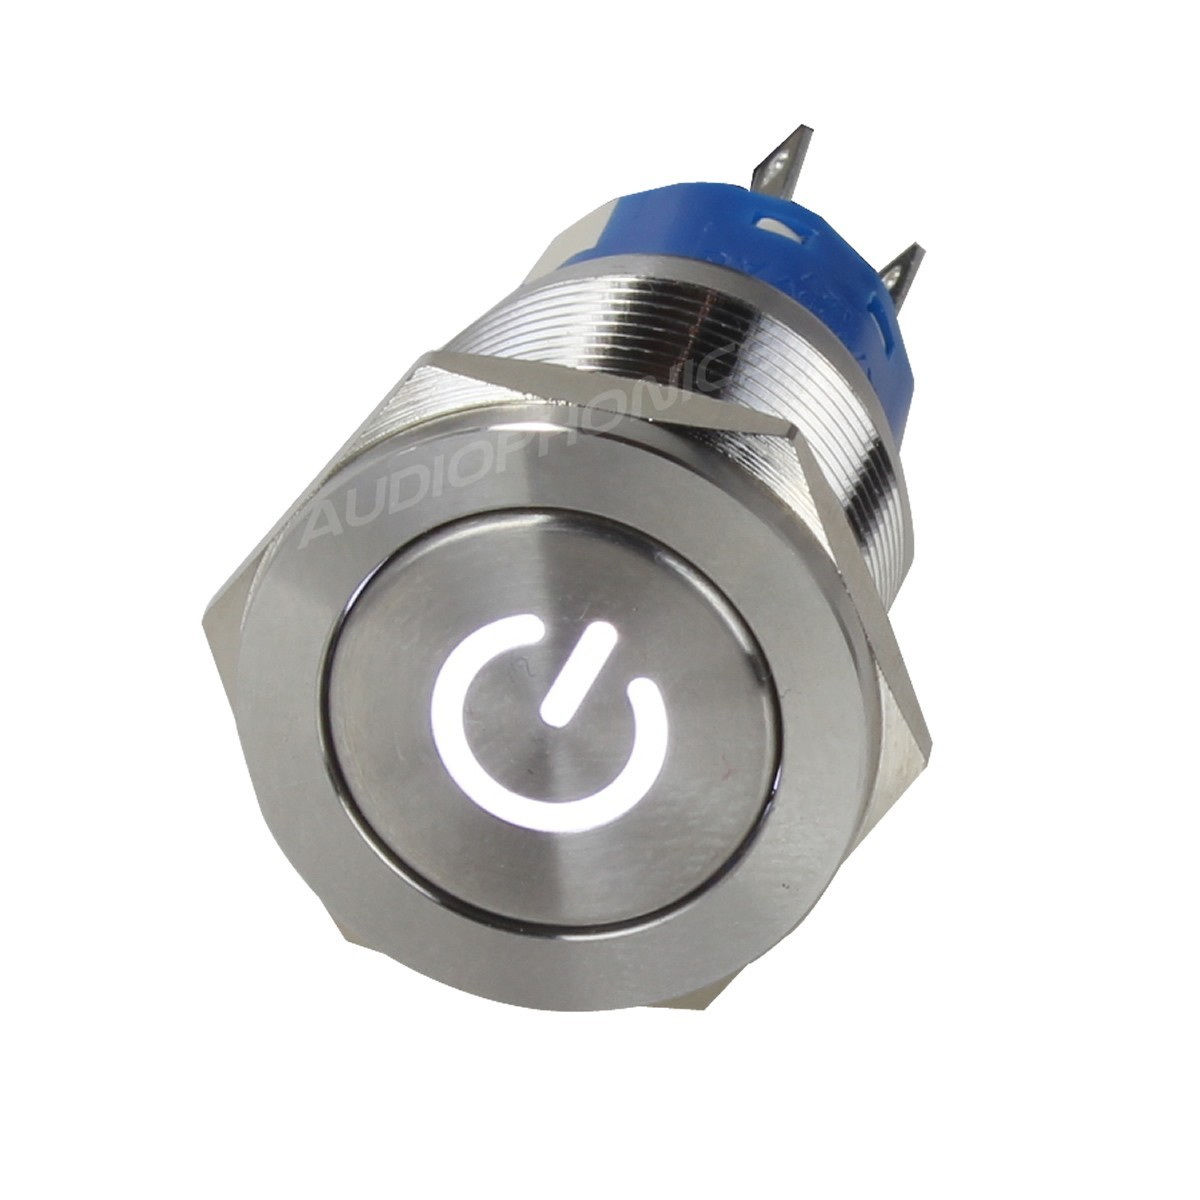 Aluminium Switch with White Power Symbol 2NO2NC 250V 5A Ø19mm Silver